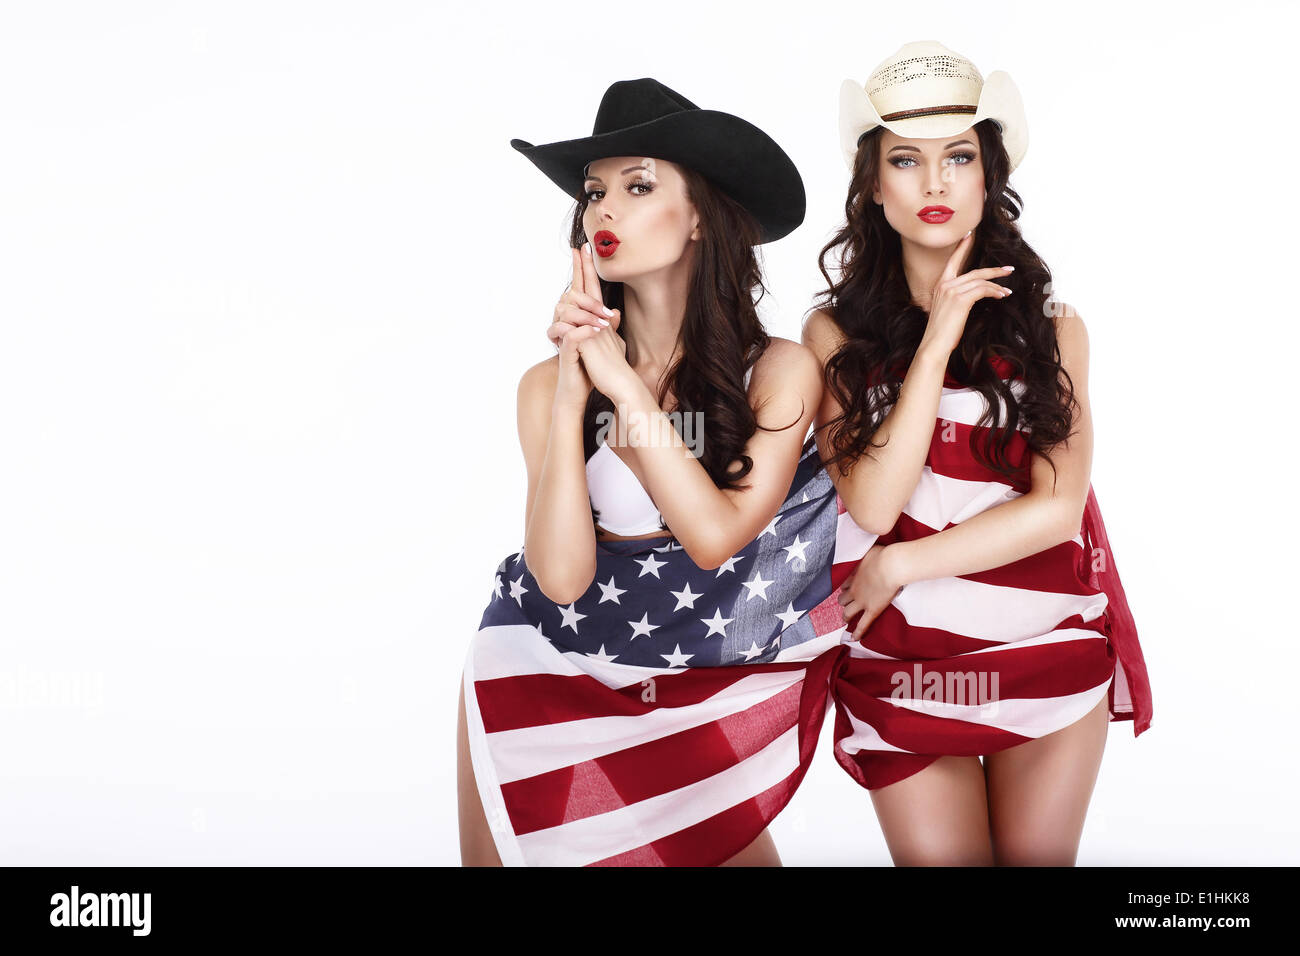 Fanciful Joyful Women Cowgirls and American Flag - Stock Image